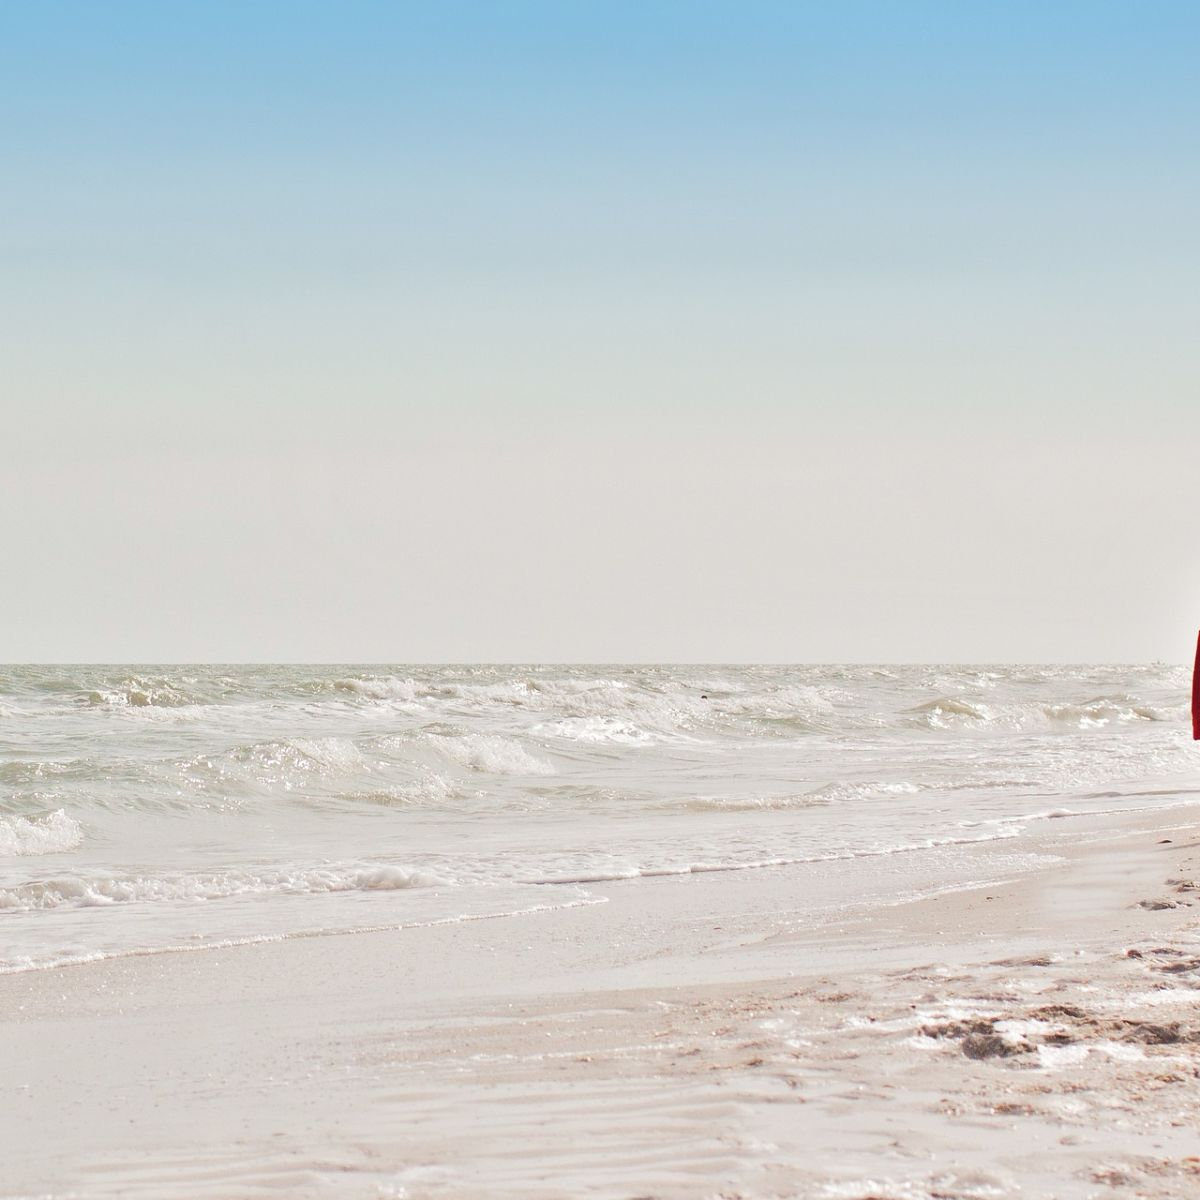 Youn girl at the beach looking into the sea and horizon